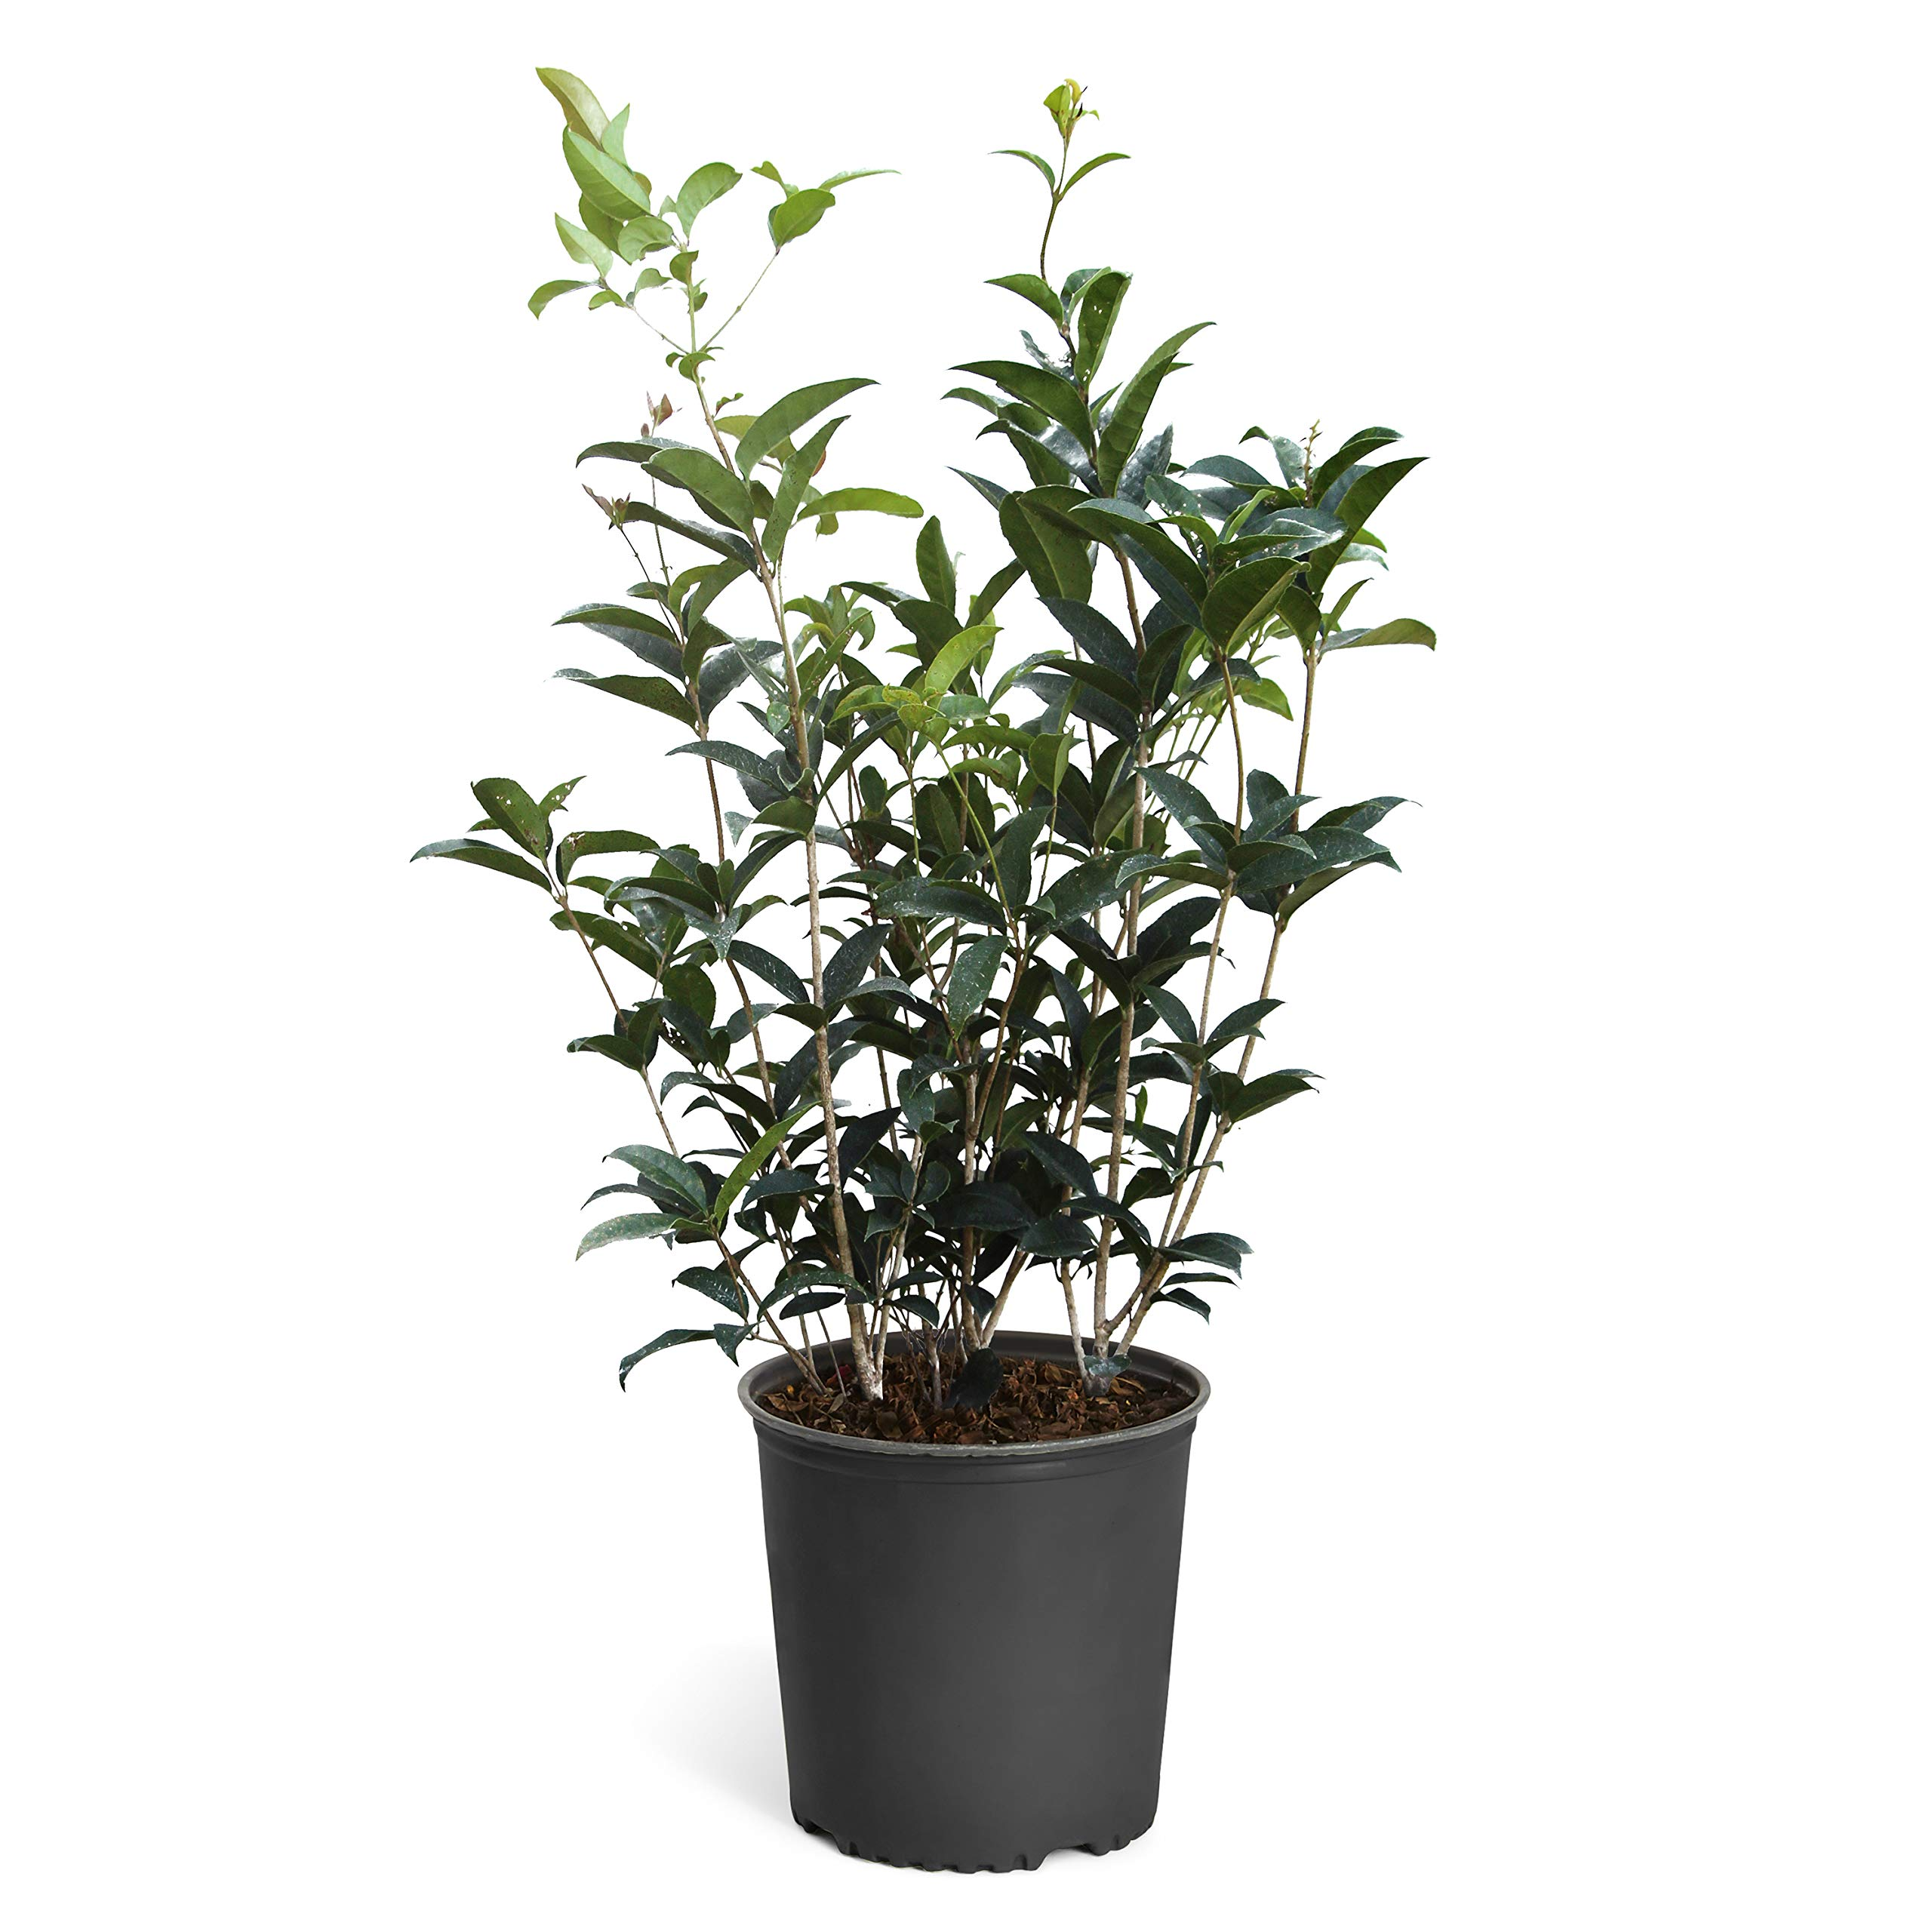 Fragrant Tea Olive Plants - Osmanthus Fragrans - The Most Fragrant Blooms! - 3 Gallon   No Shipping to AZ